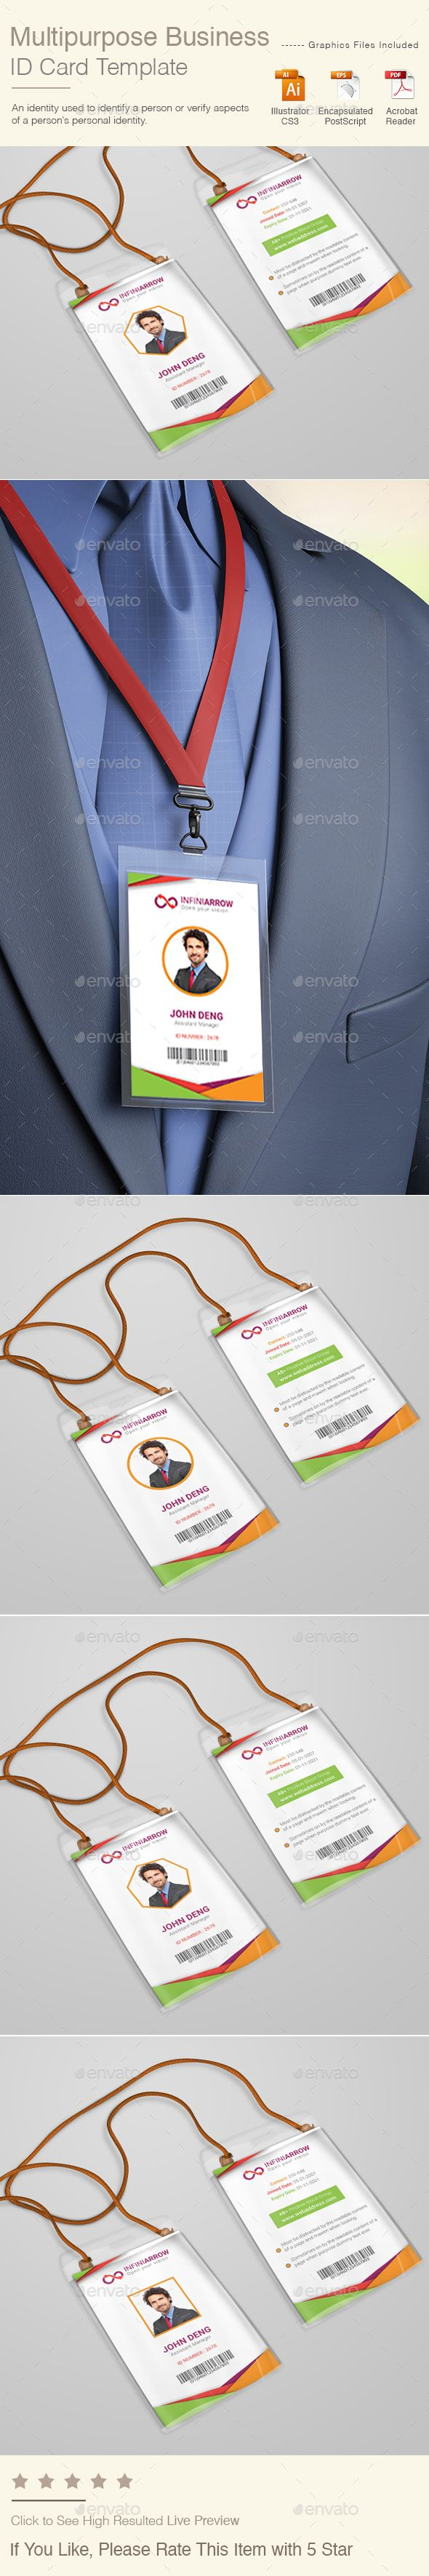 Multipurpose Business Id Card Template  Card Templates Template